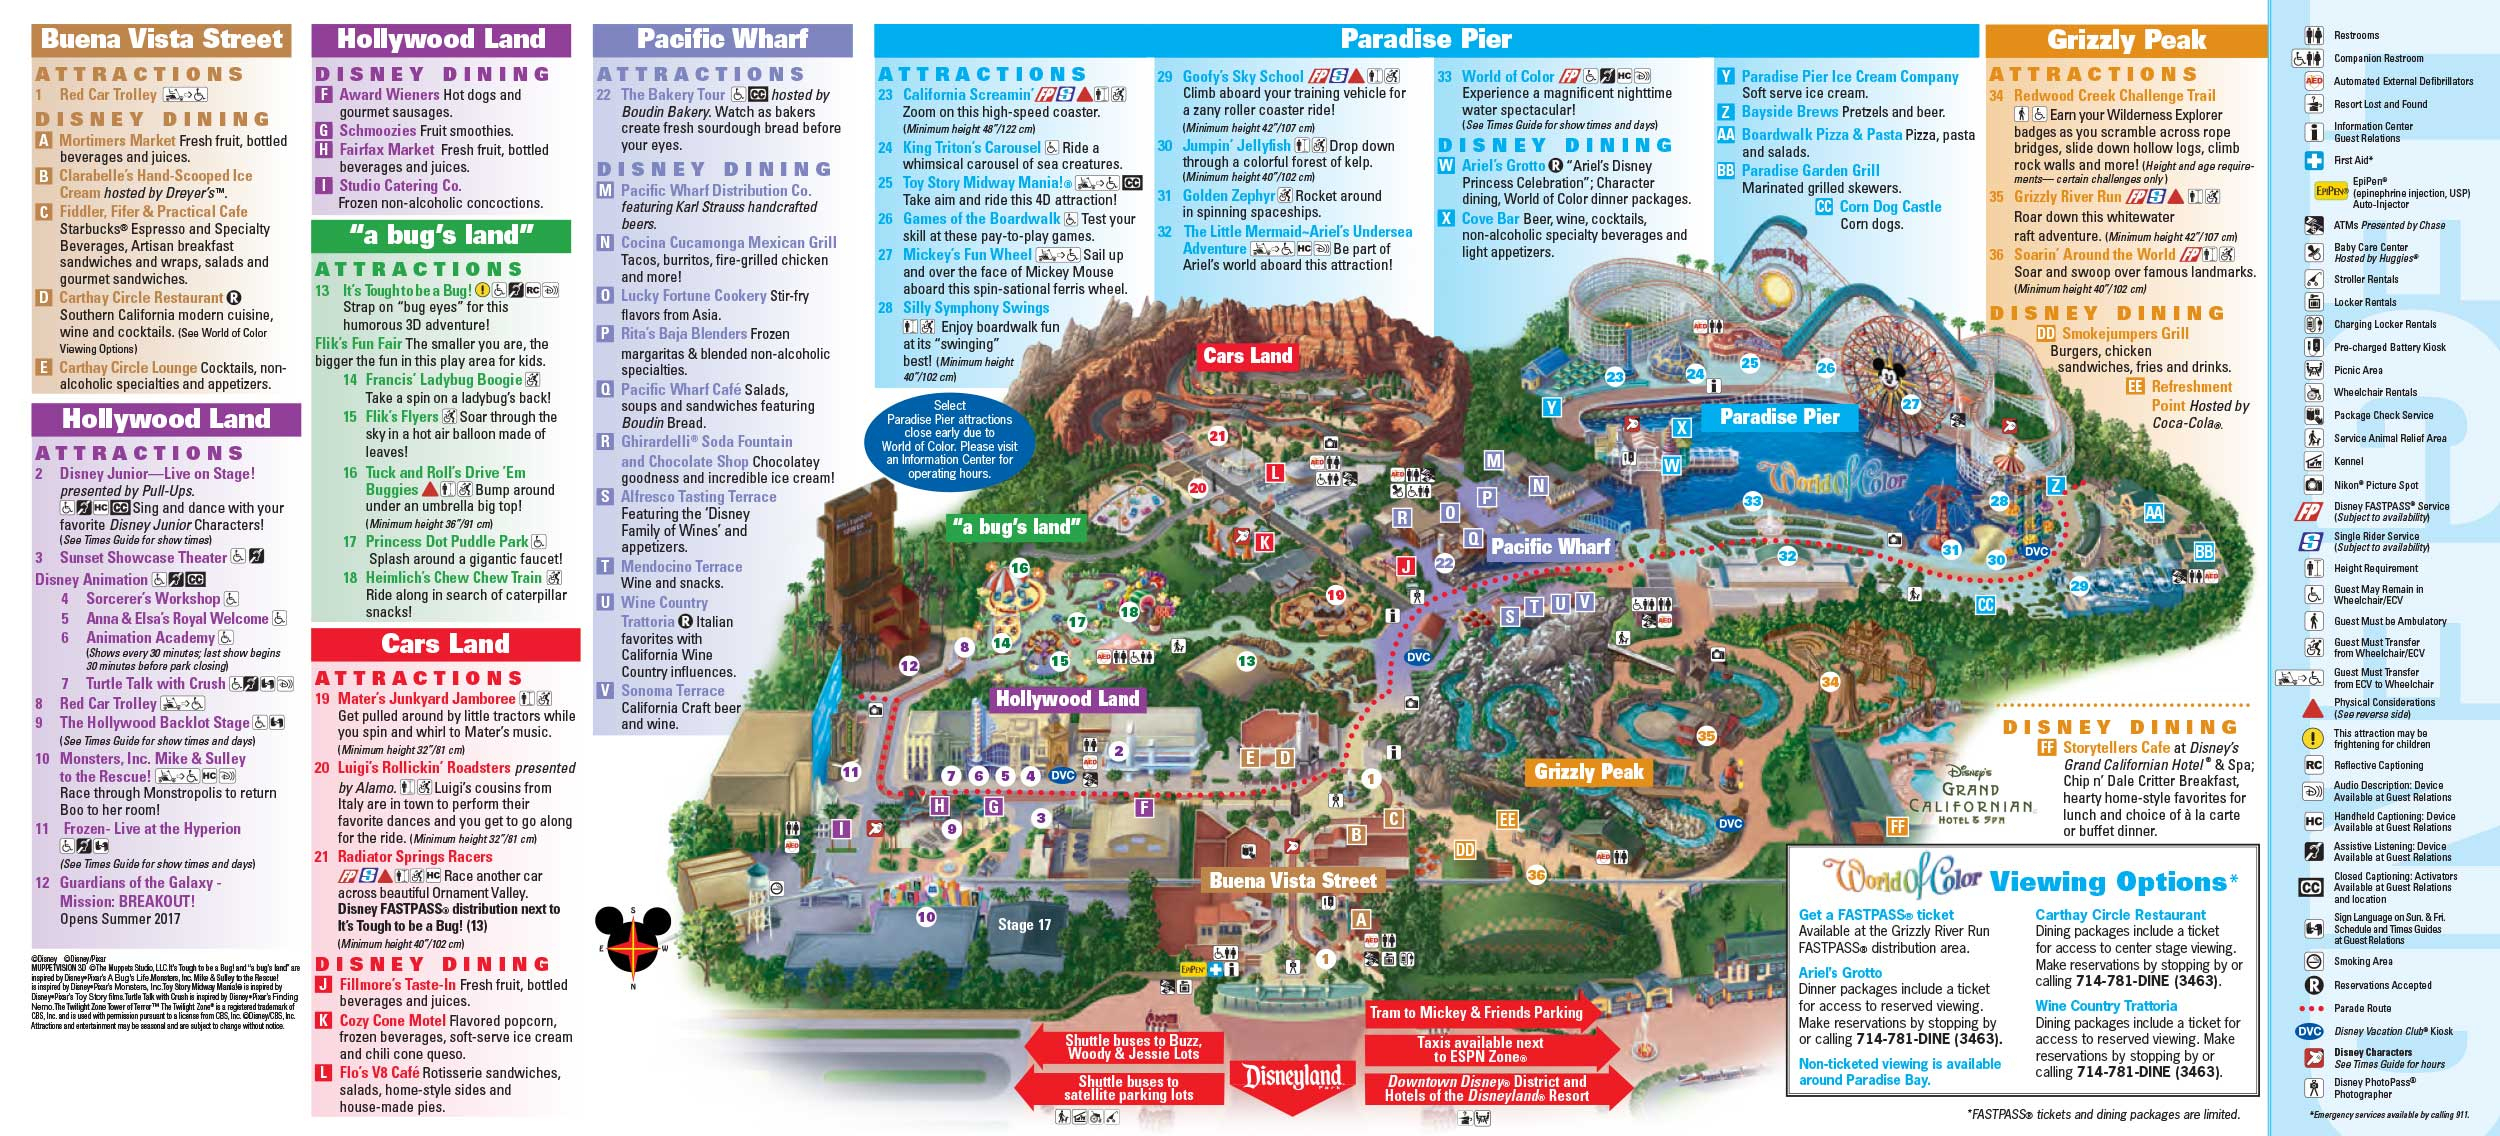 Disneyland Park Map In California, Map Of Disneyland - Disney World California Map